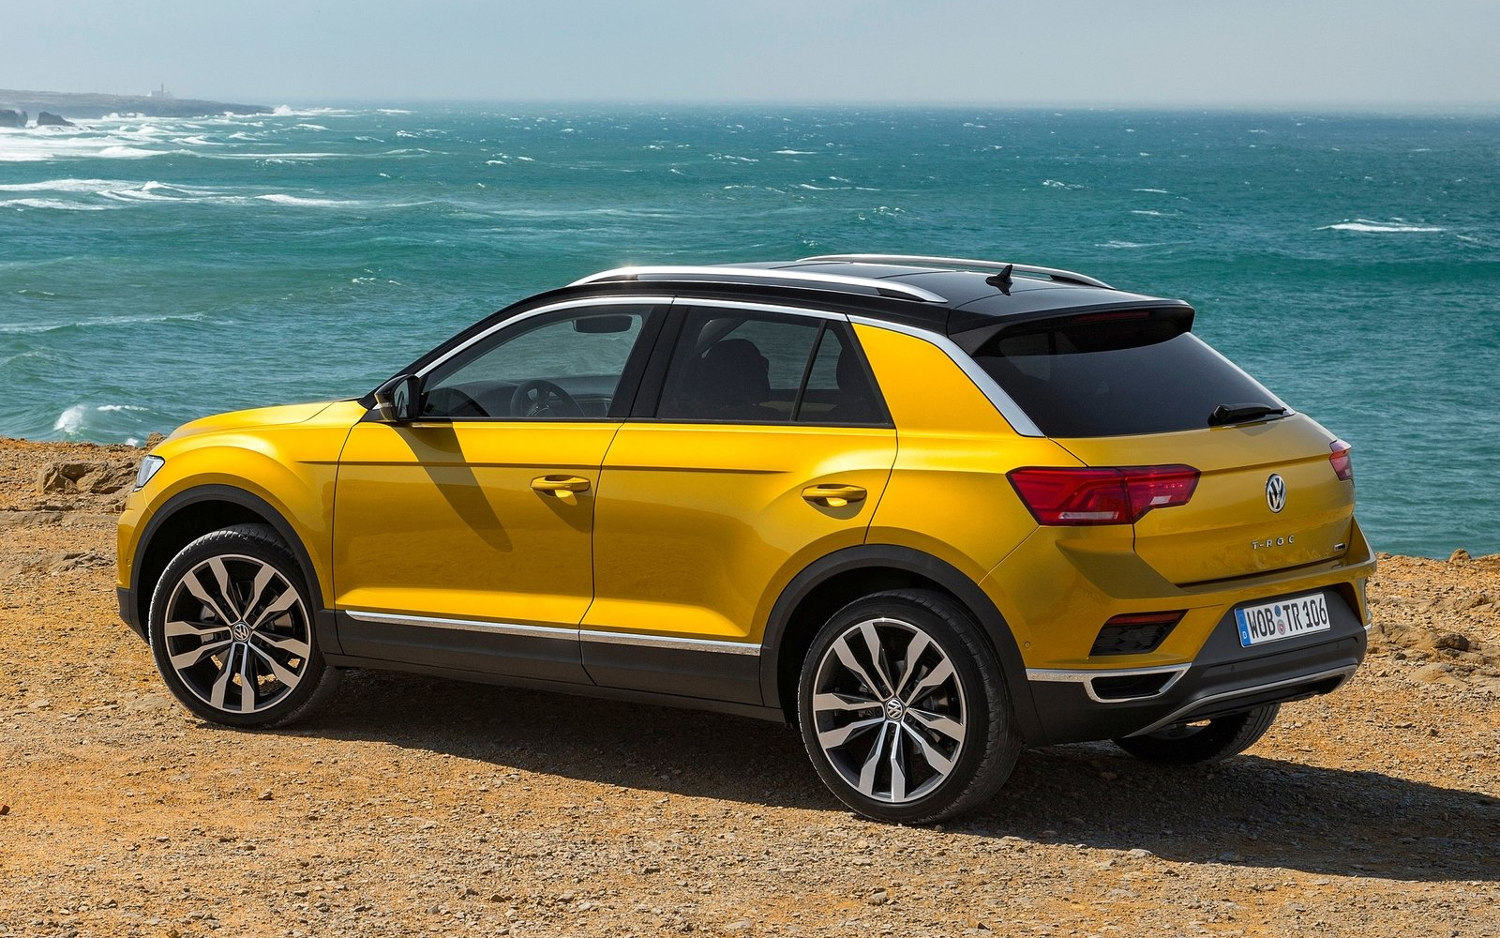 volkswagen t roc geneva 2014 volkswagen t roc concept volkswagen t roc moteur 1 5 tsi 150 au. Black Bedroom Furniture Sets. Home Design Ideas